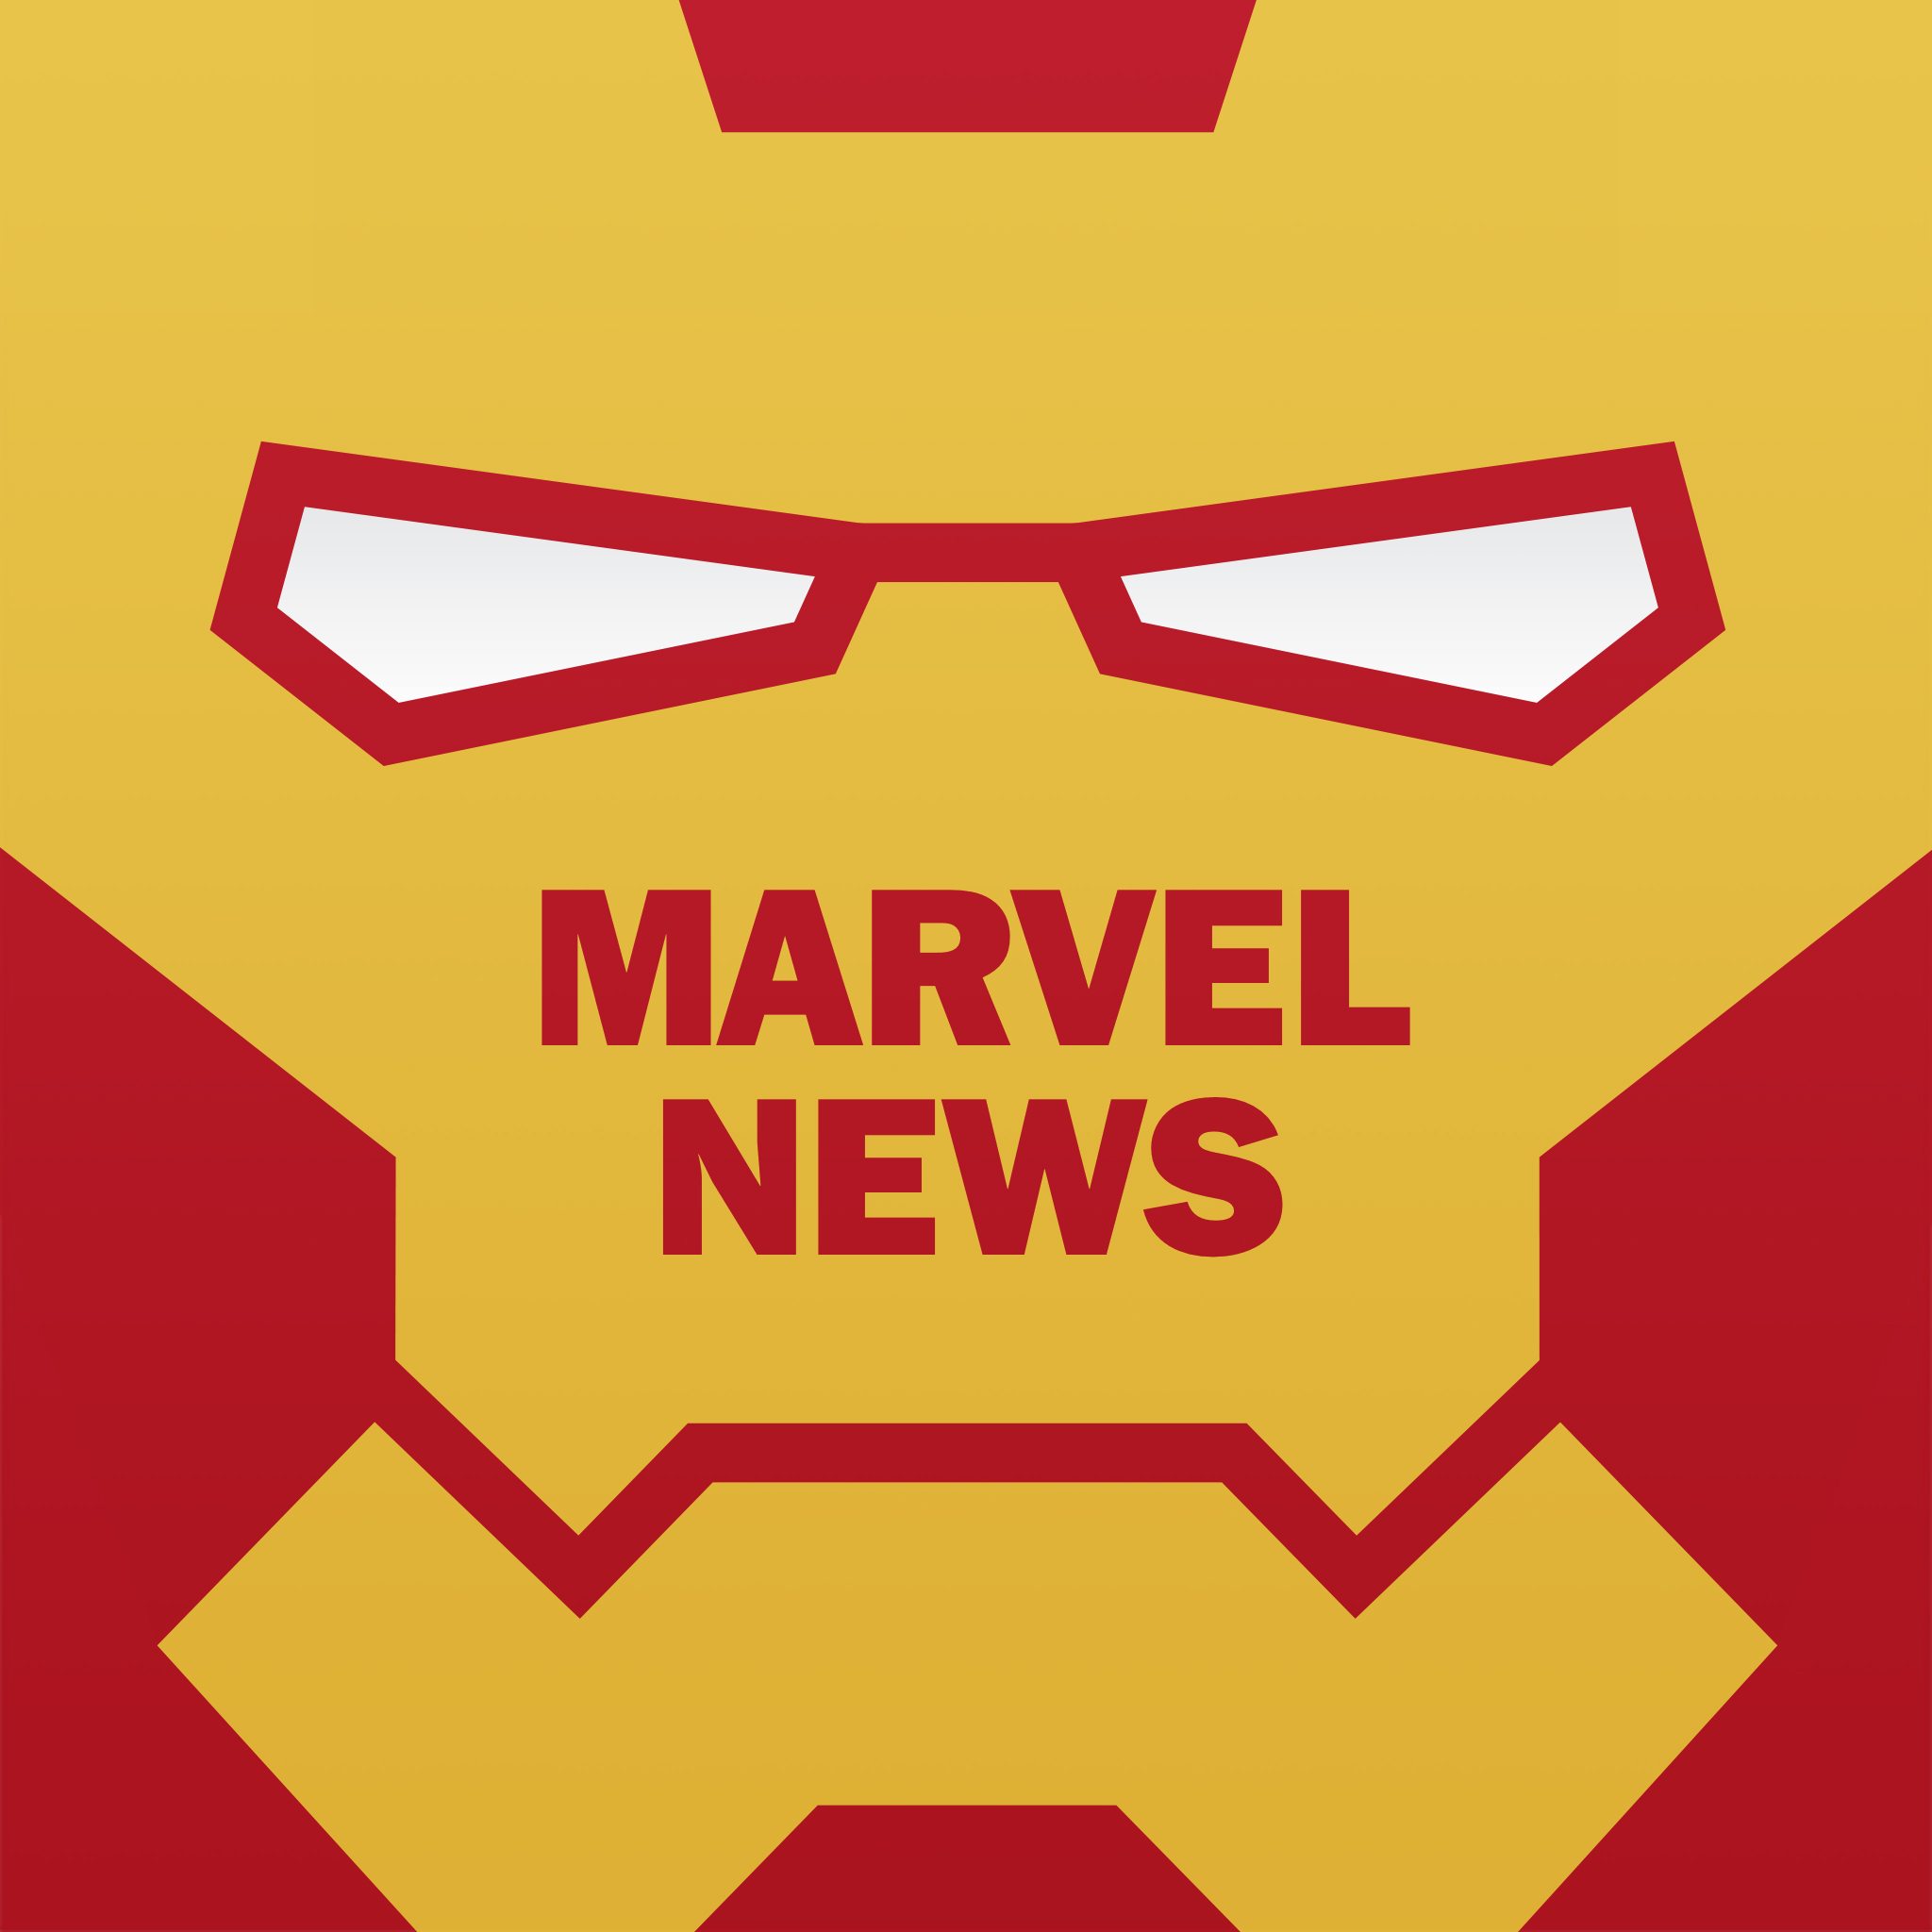 Marvel News